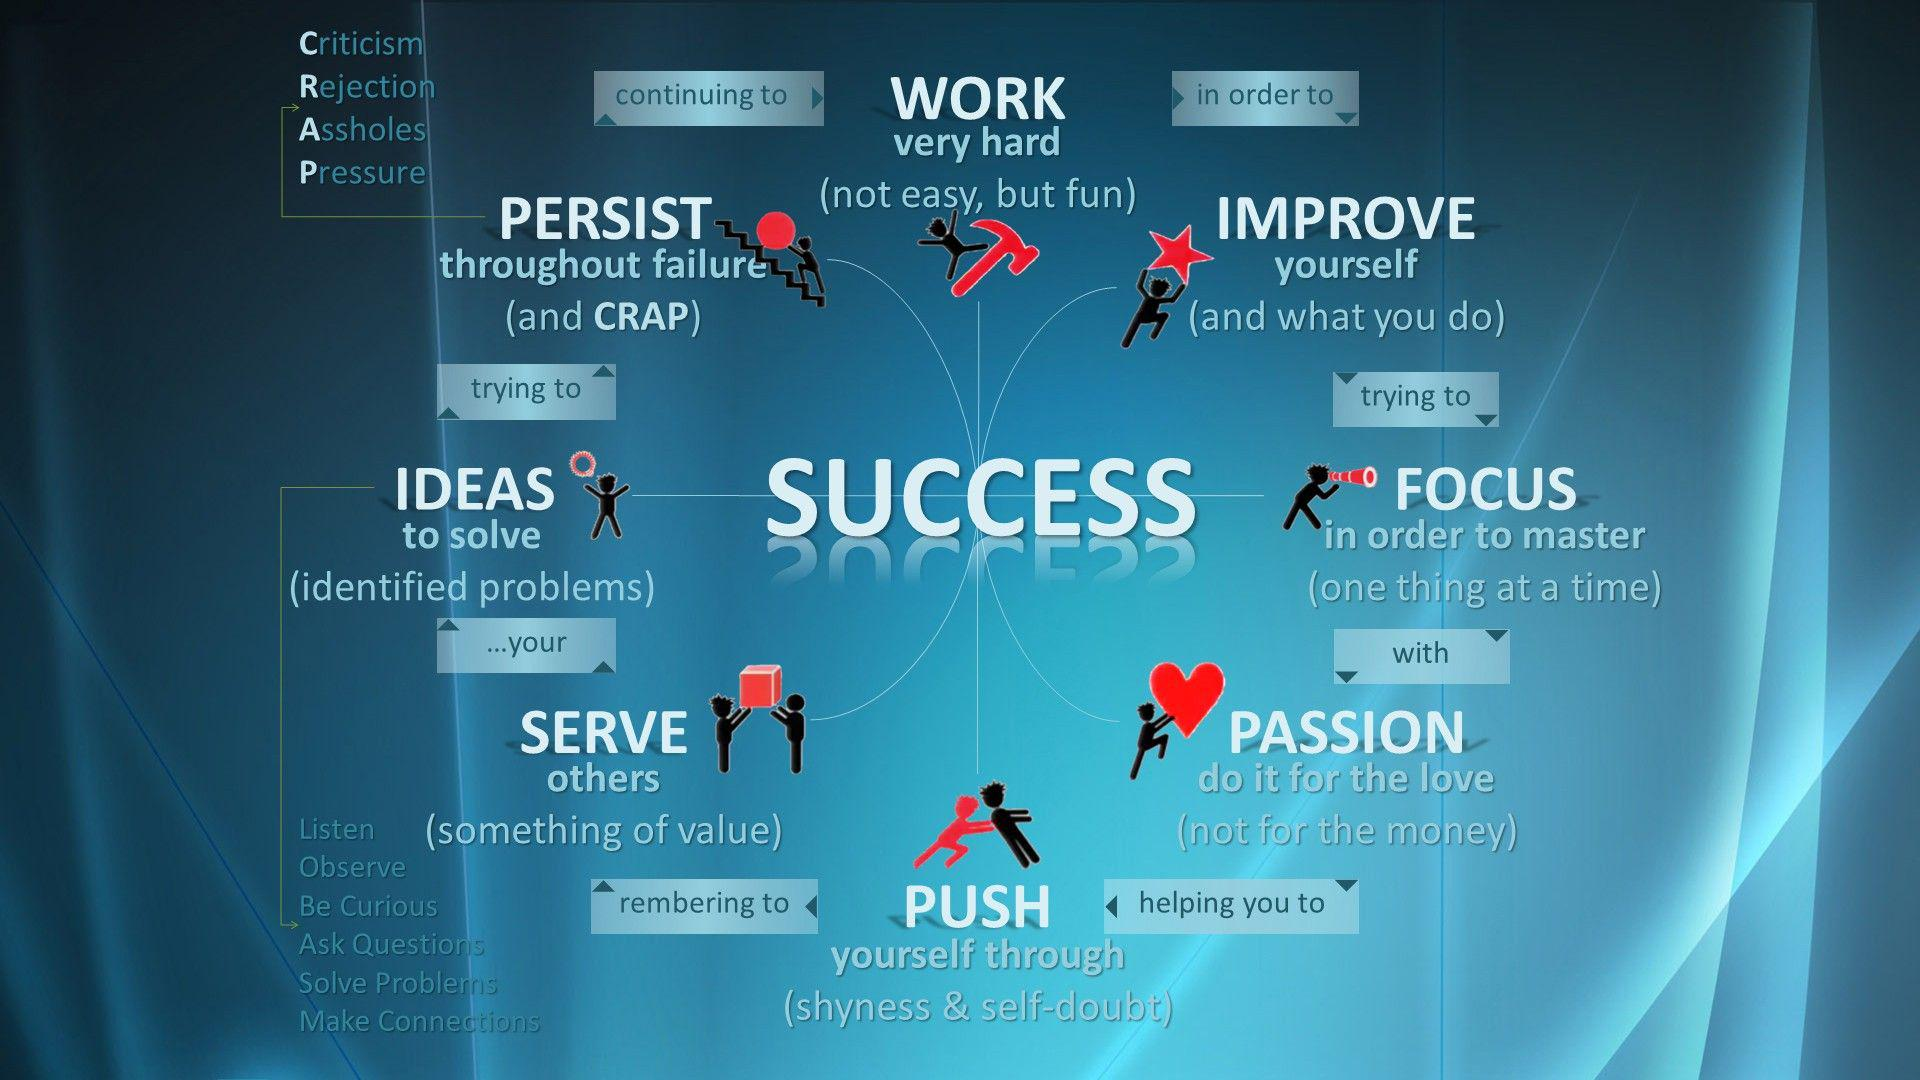 [Image]The essentials of success